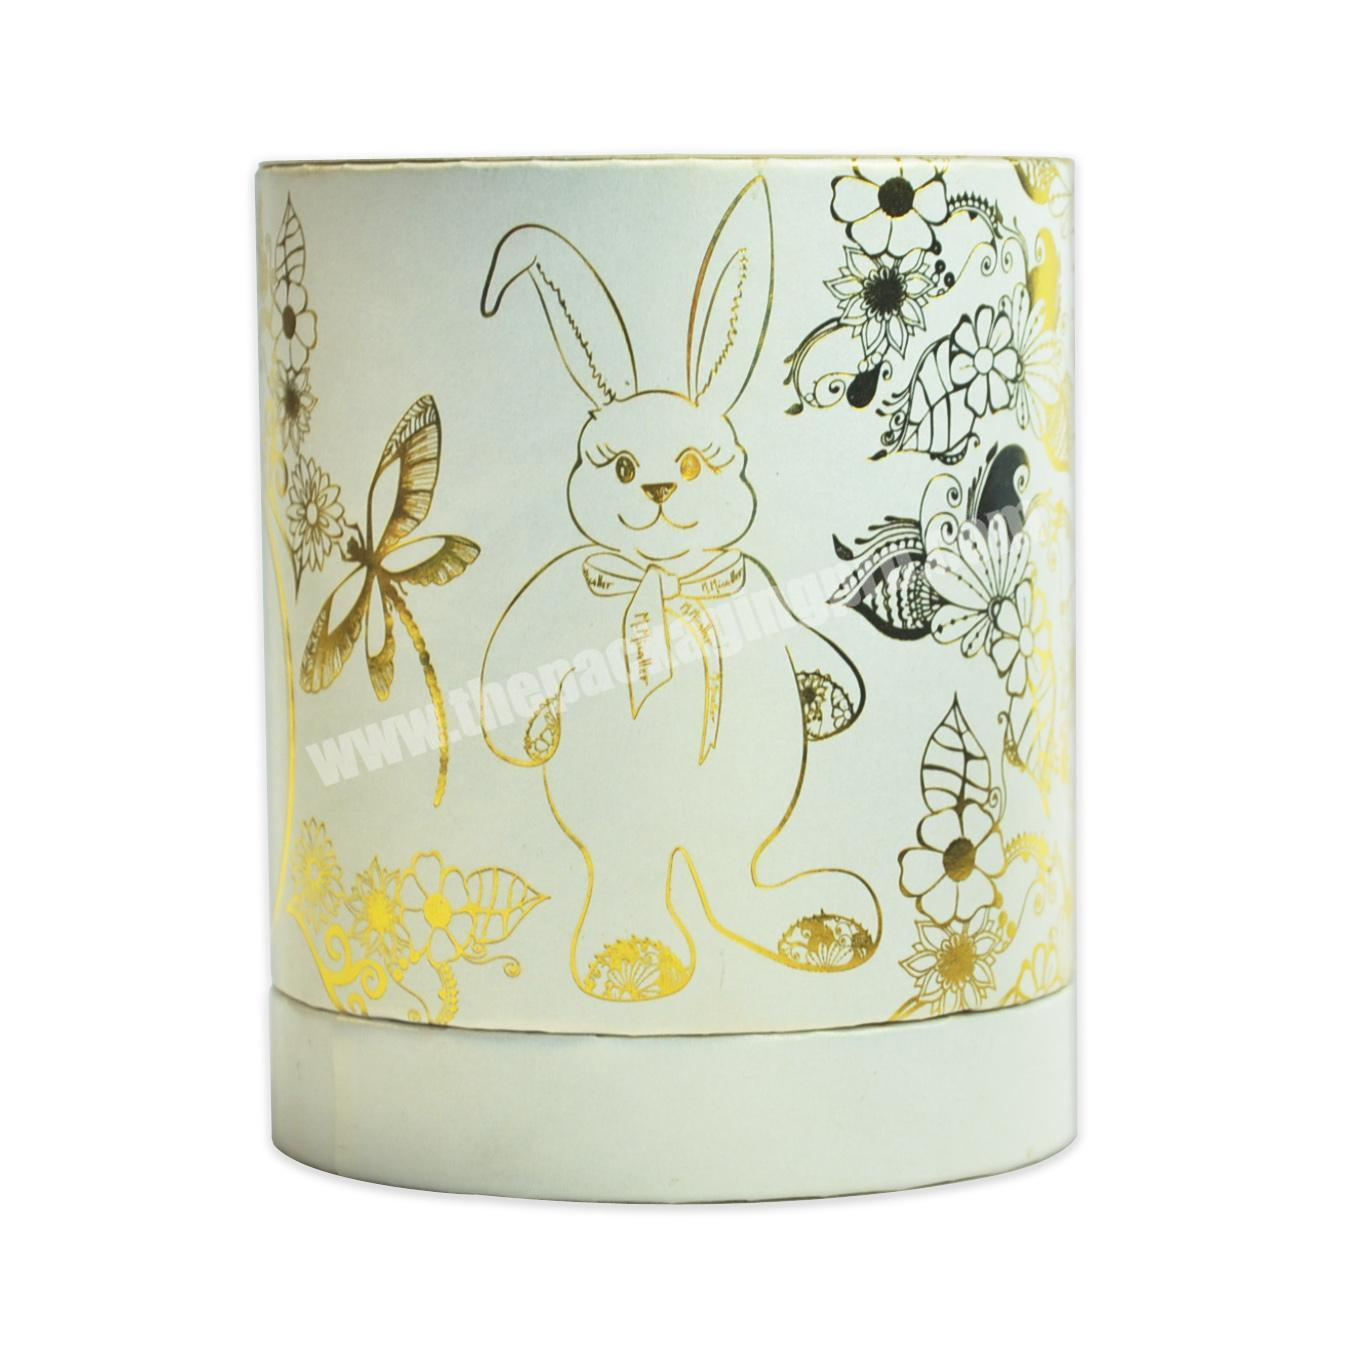 Shop Perfume Paper Box Cylinder Tube Container Paper Box for Perfume Packing